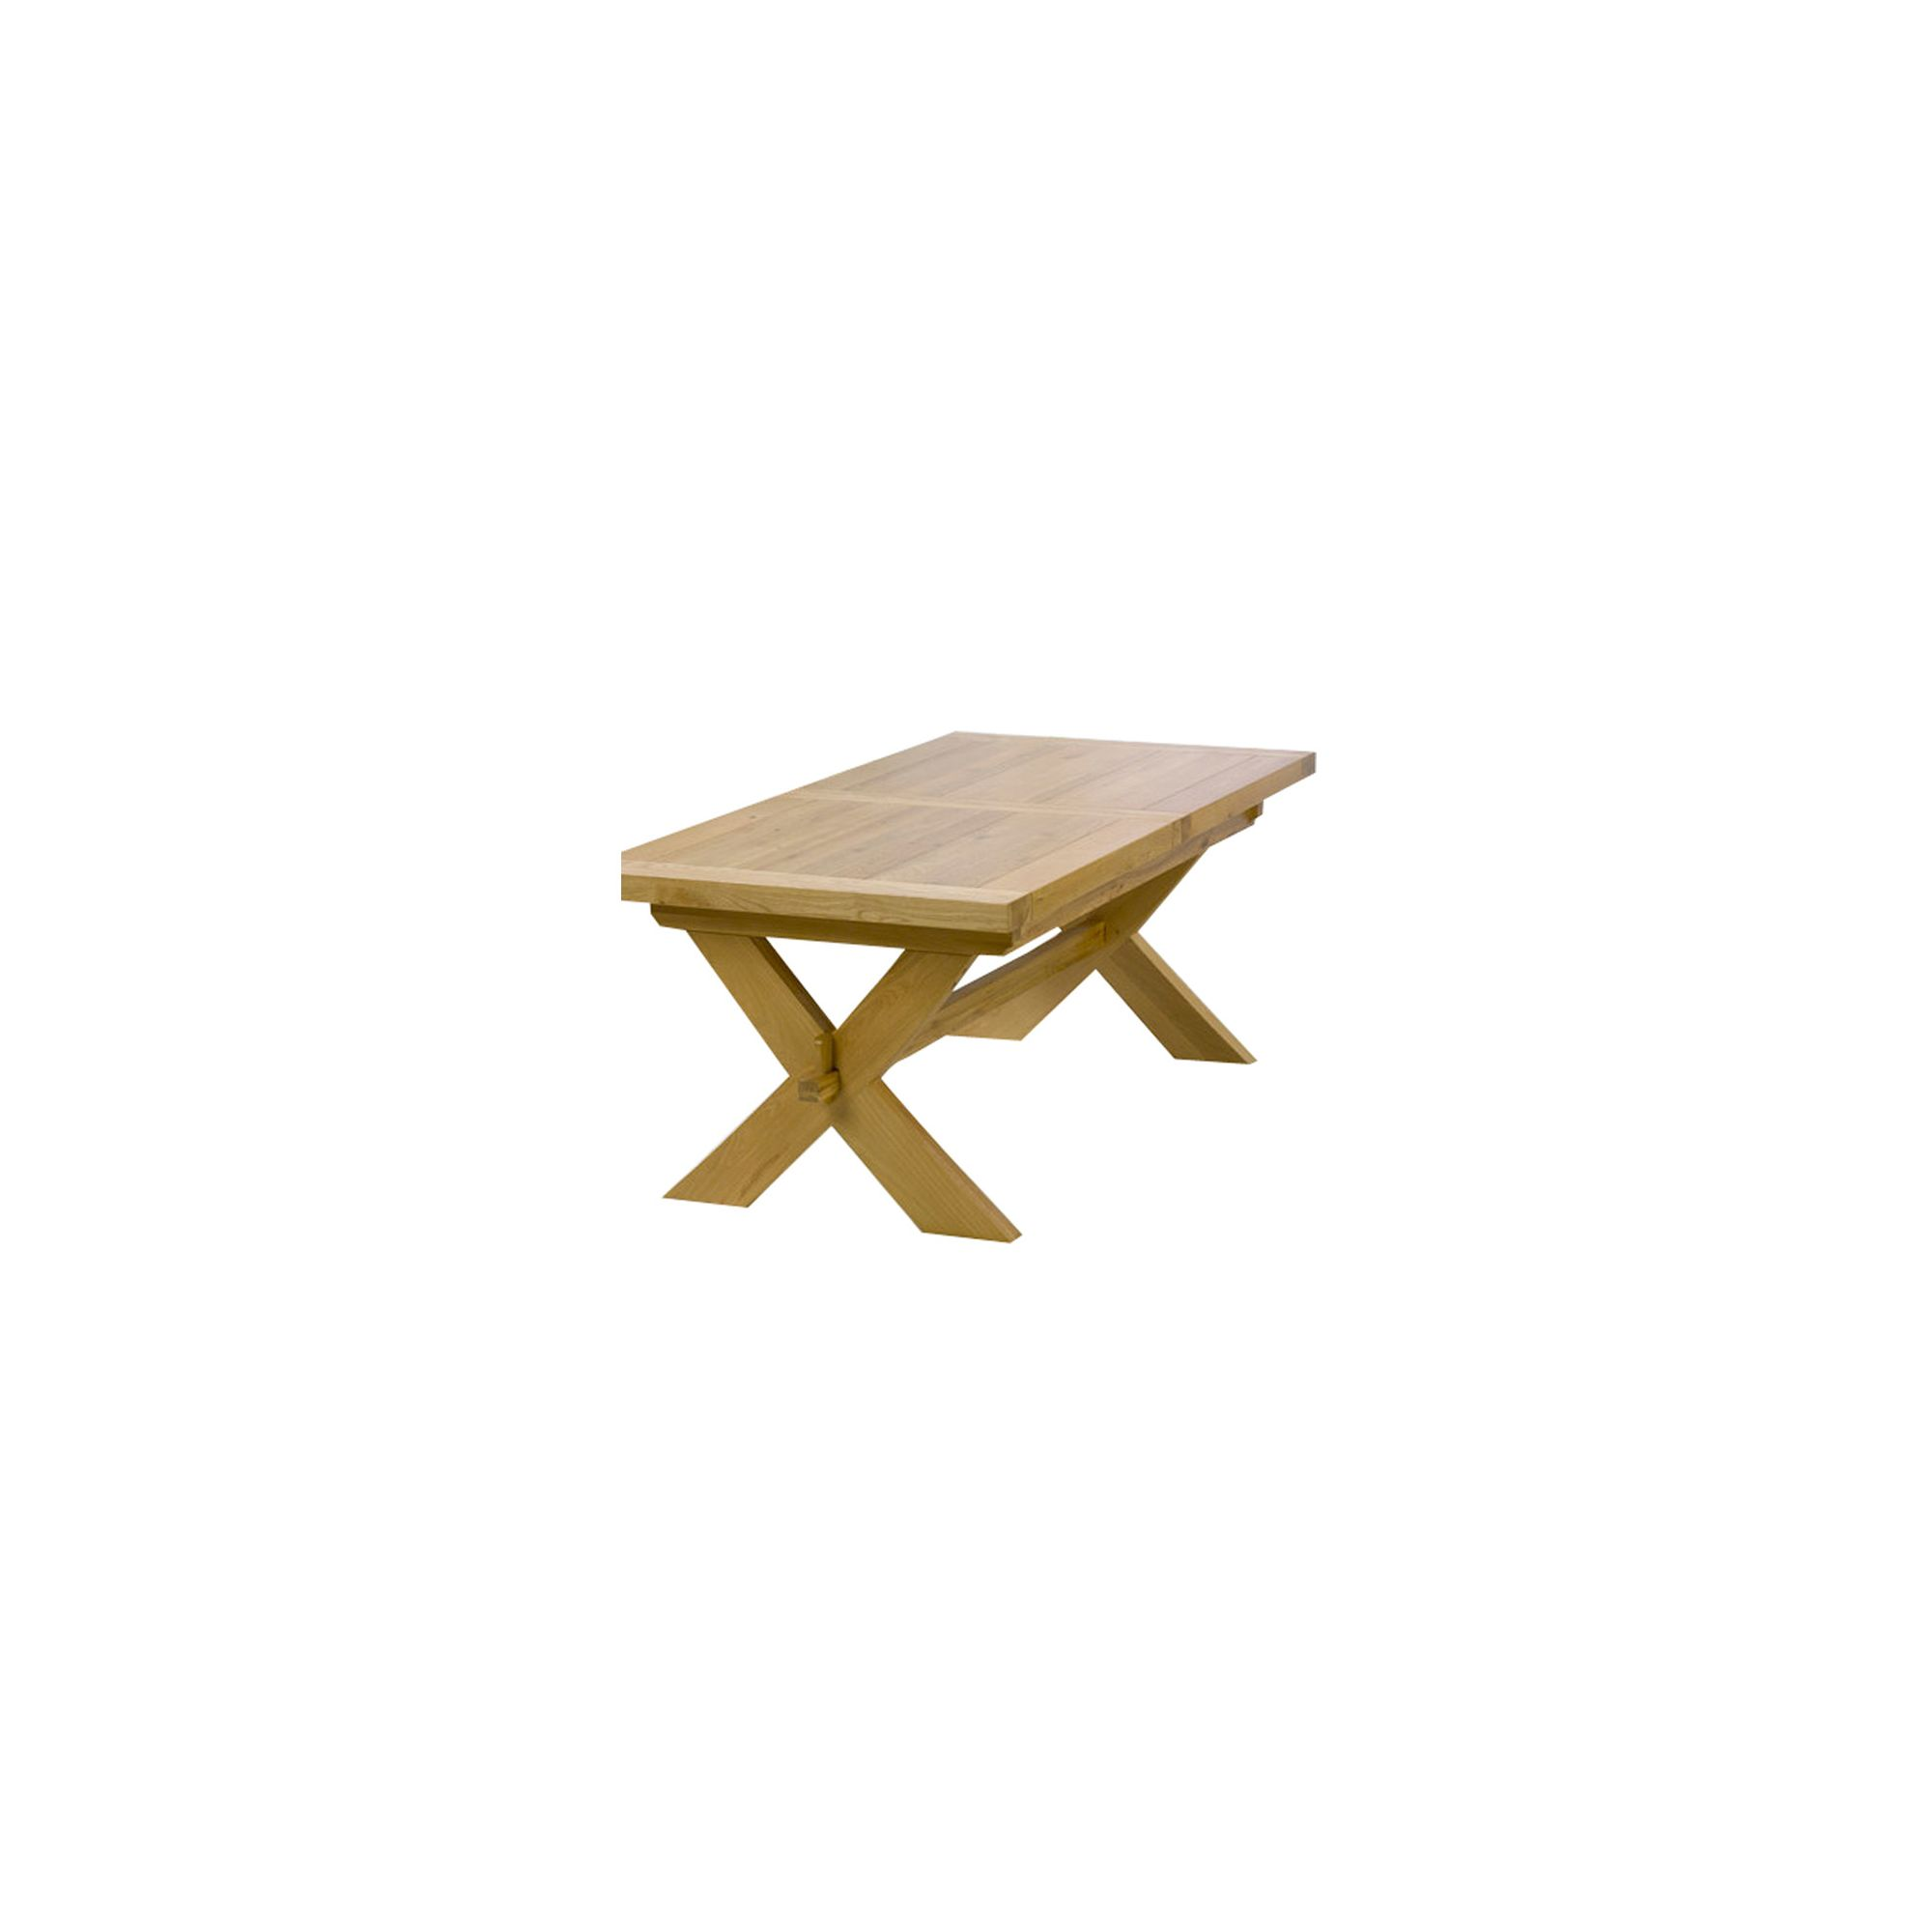 Mark Harris Furniture Avignon Solid Oak Extending Dining Table - 160 cm